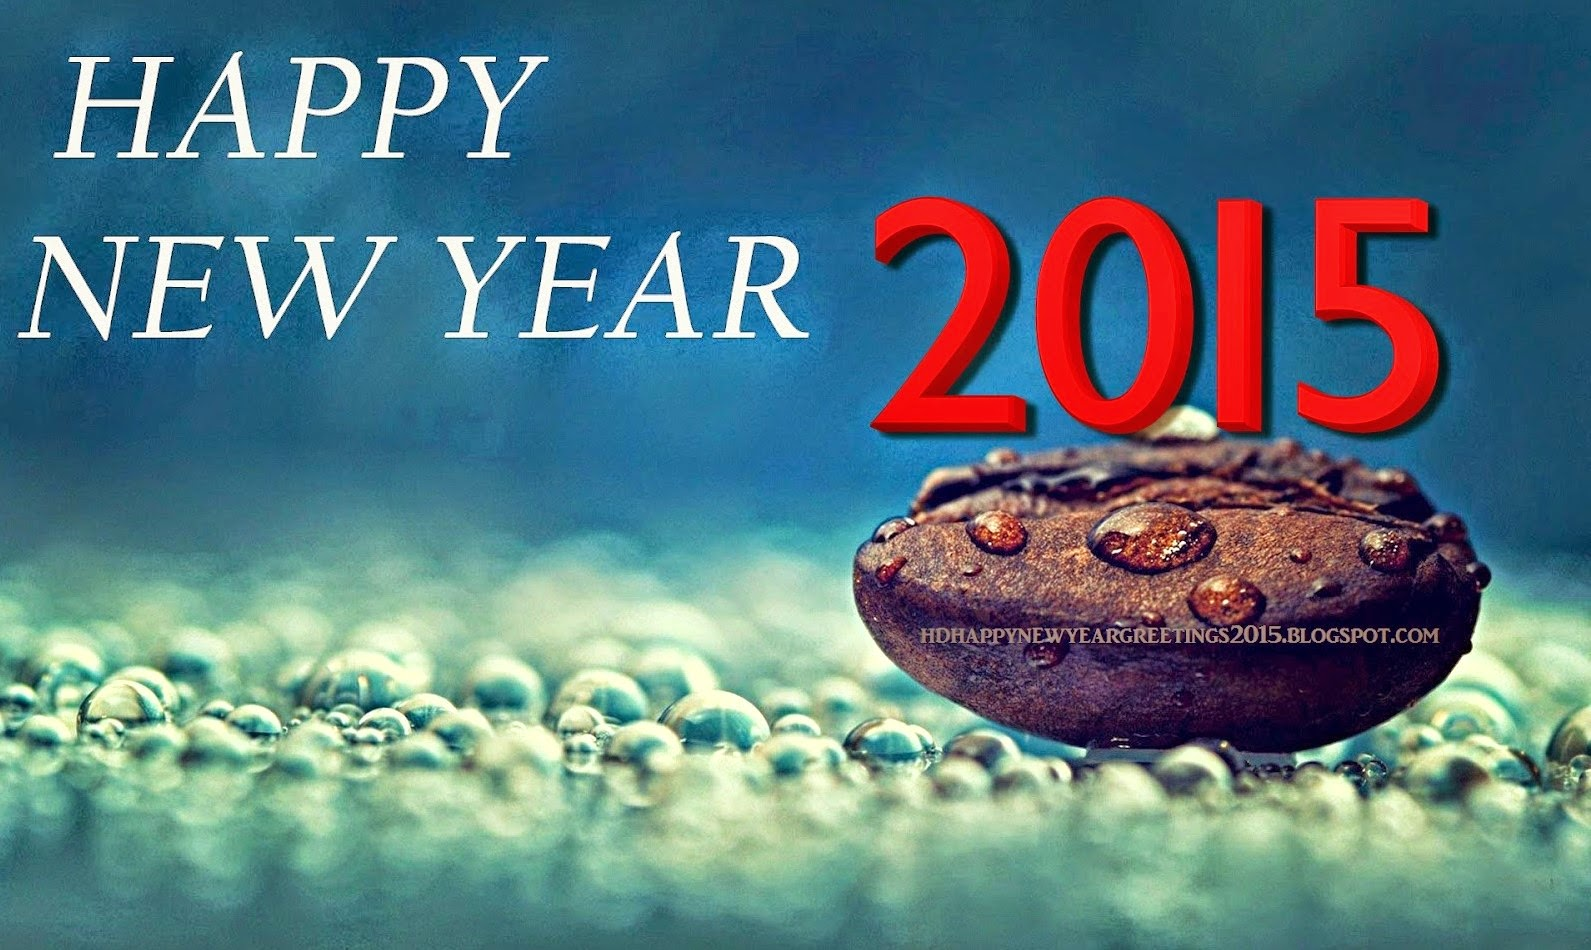 Happy New Year 2015 Messages In English Sms Greetings For Facebook